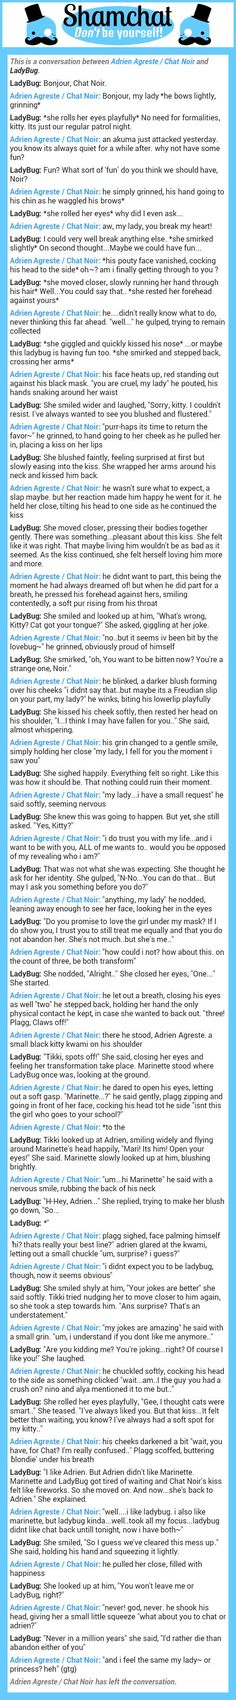 A conversation between LadyBug and Adrien Agreste / Chat Noir: